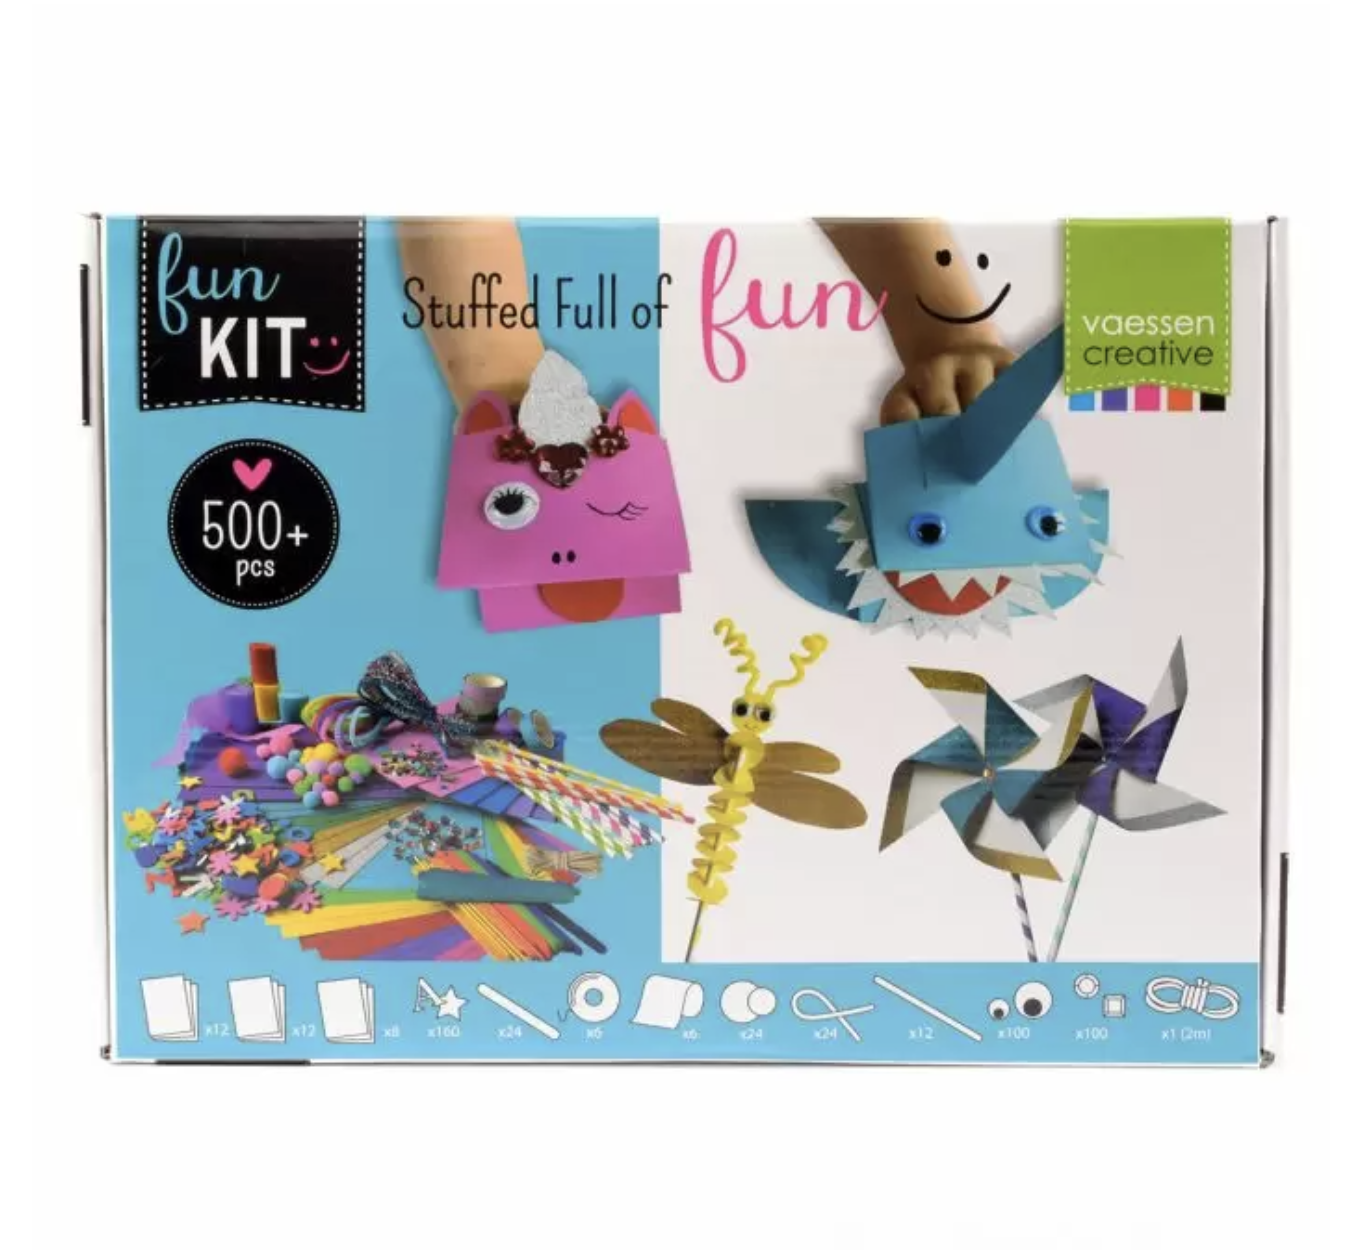 Fun kit knutselpakket voor kids nr.2